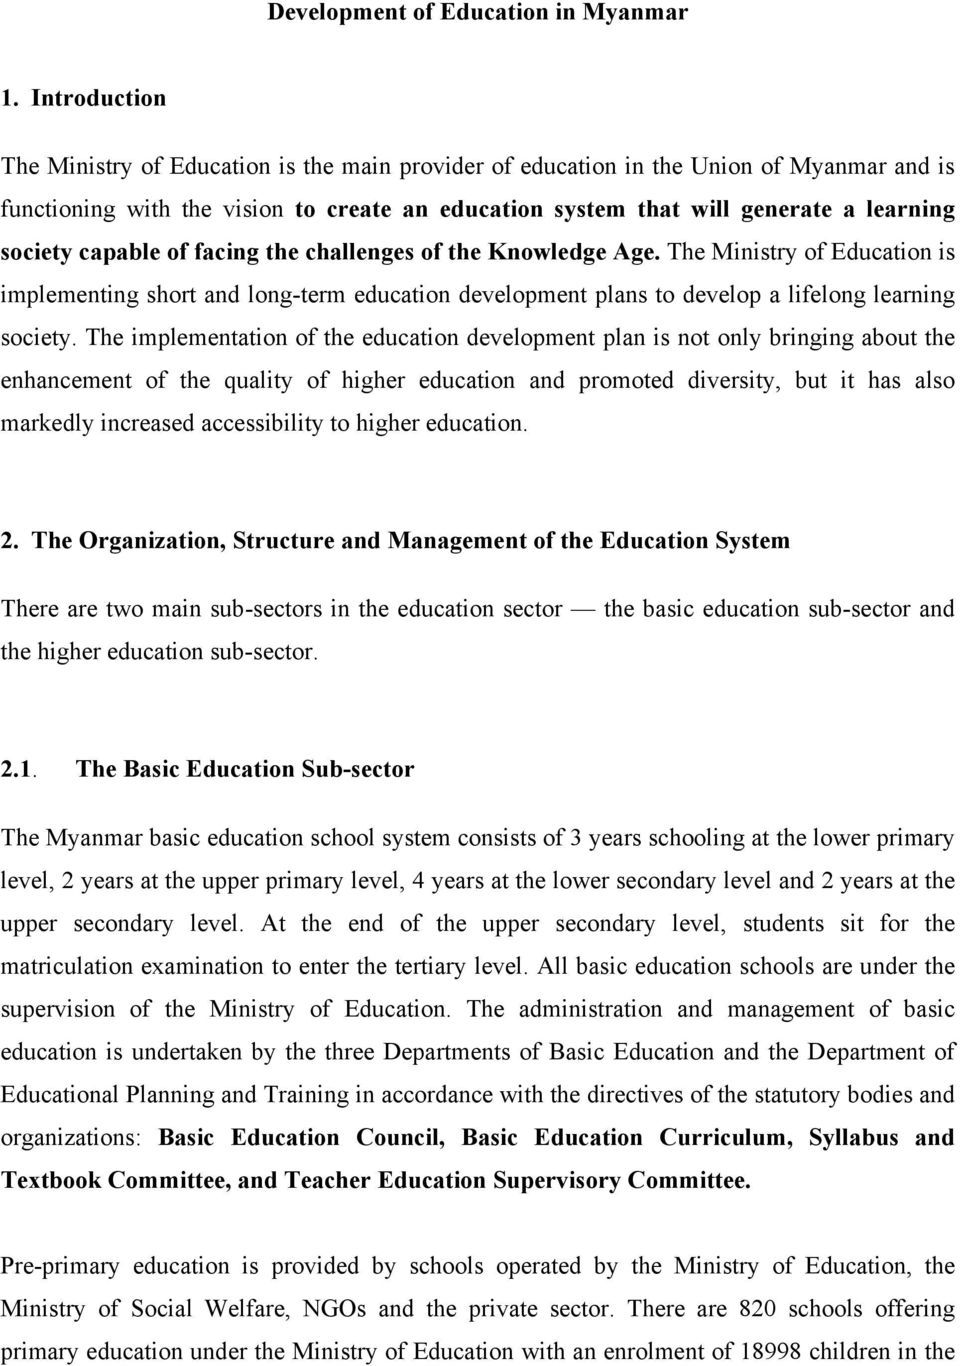 capable of facing the challenges of the Knowledge Age. The Ministry of Education is implementing short and long-term education development plans to develop a lifelong learning society.